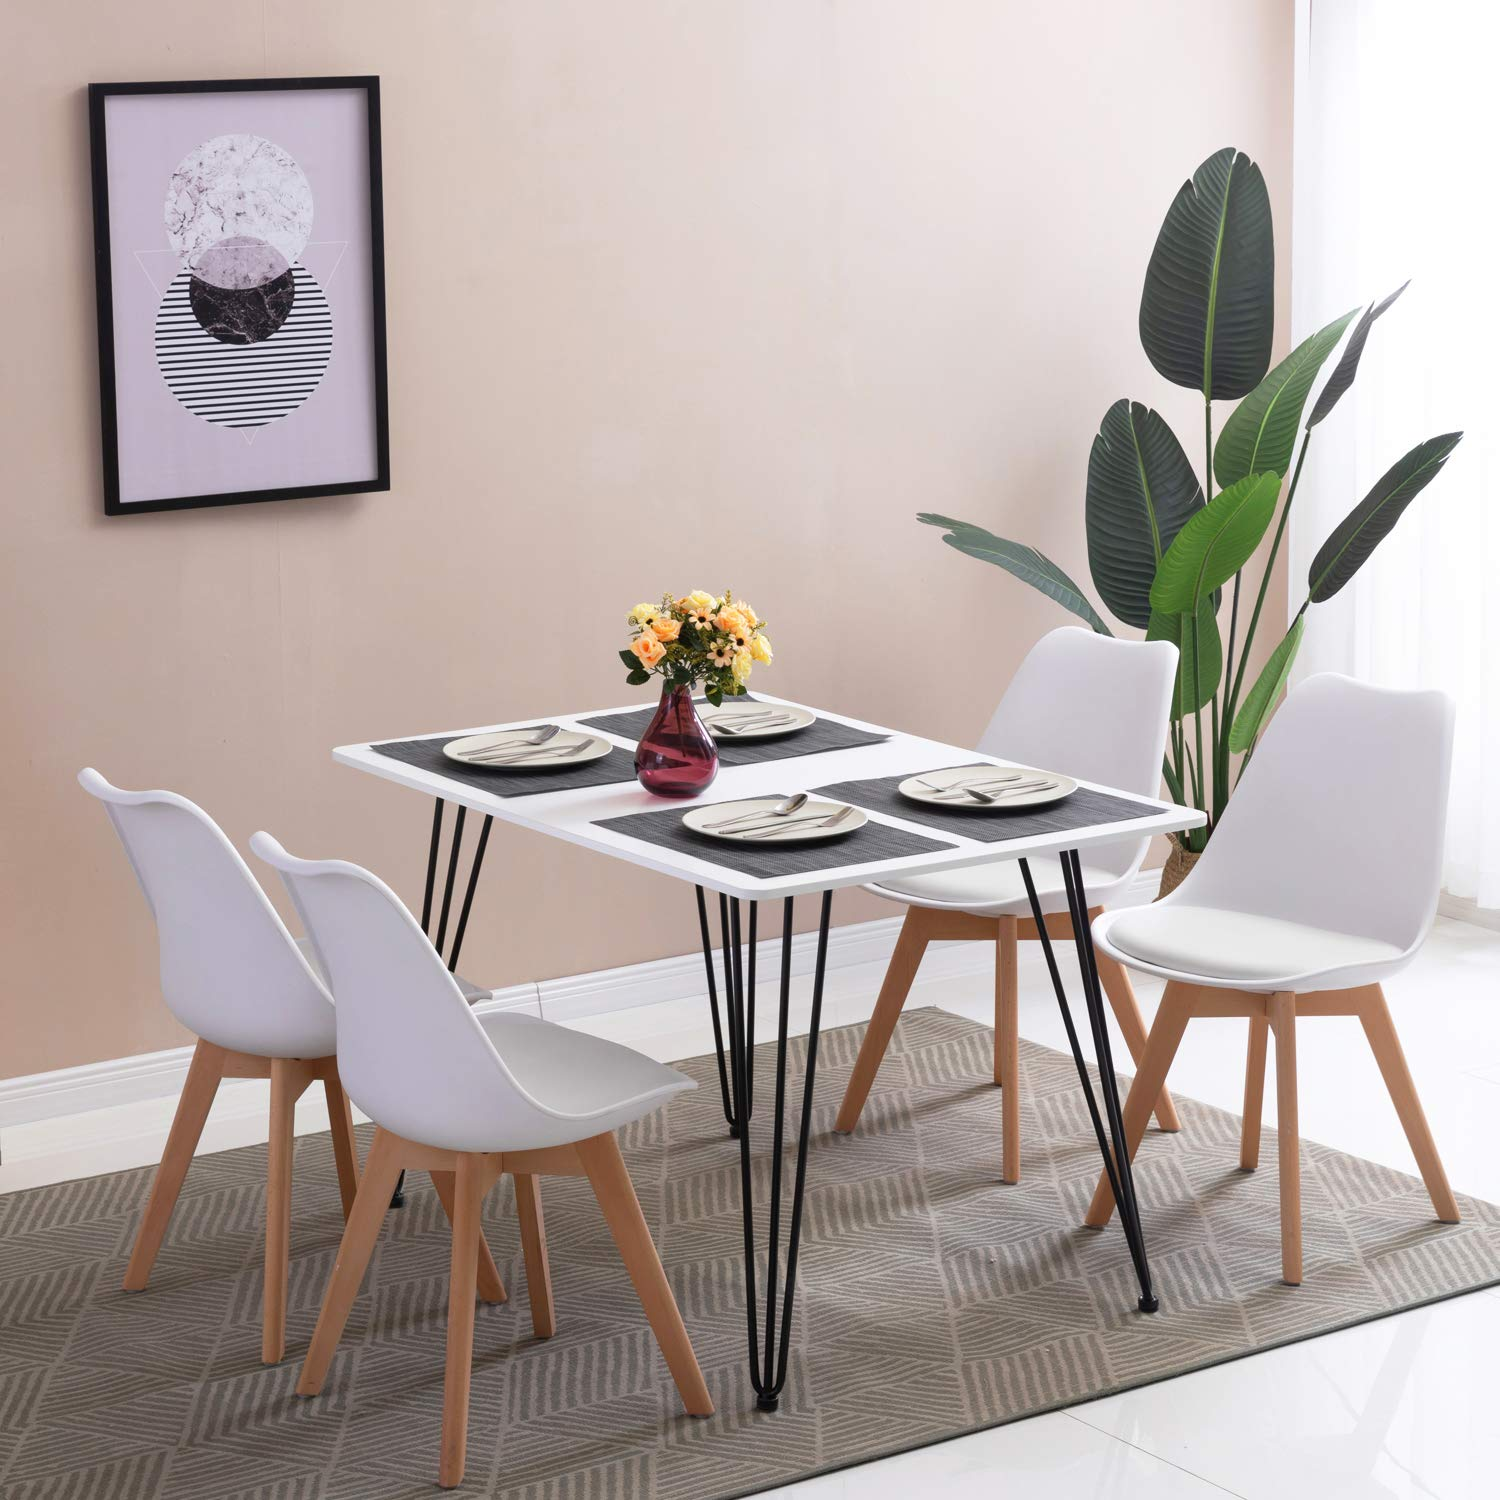 Solid Wood Kitchen Table And Chairs: Round Dining Table And Dining Chairs Retro Solid Wood For